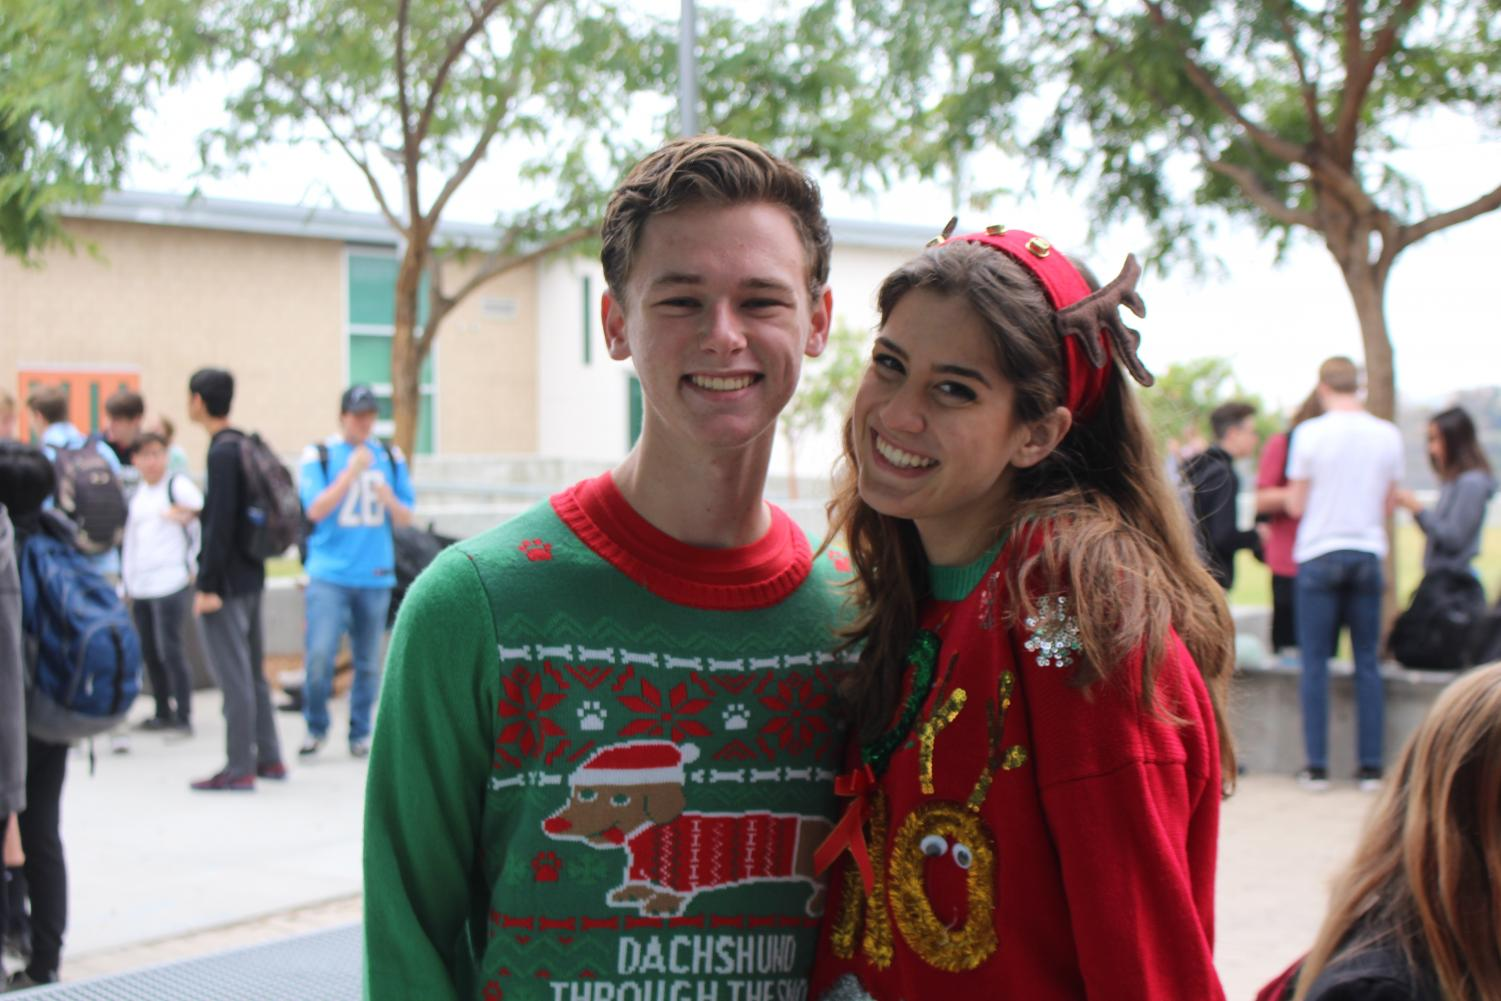 Juniors+Maddie+Connelly+and+Charlie+Roth+enjoy+their+last+day+together+until+winter+break.+To+wrap+up+the+spirit+week%2C+students+wore+ugly+Christmas+sweaters.+